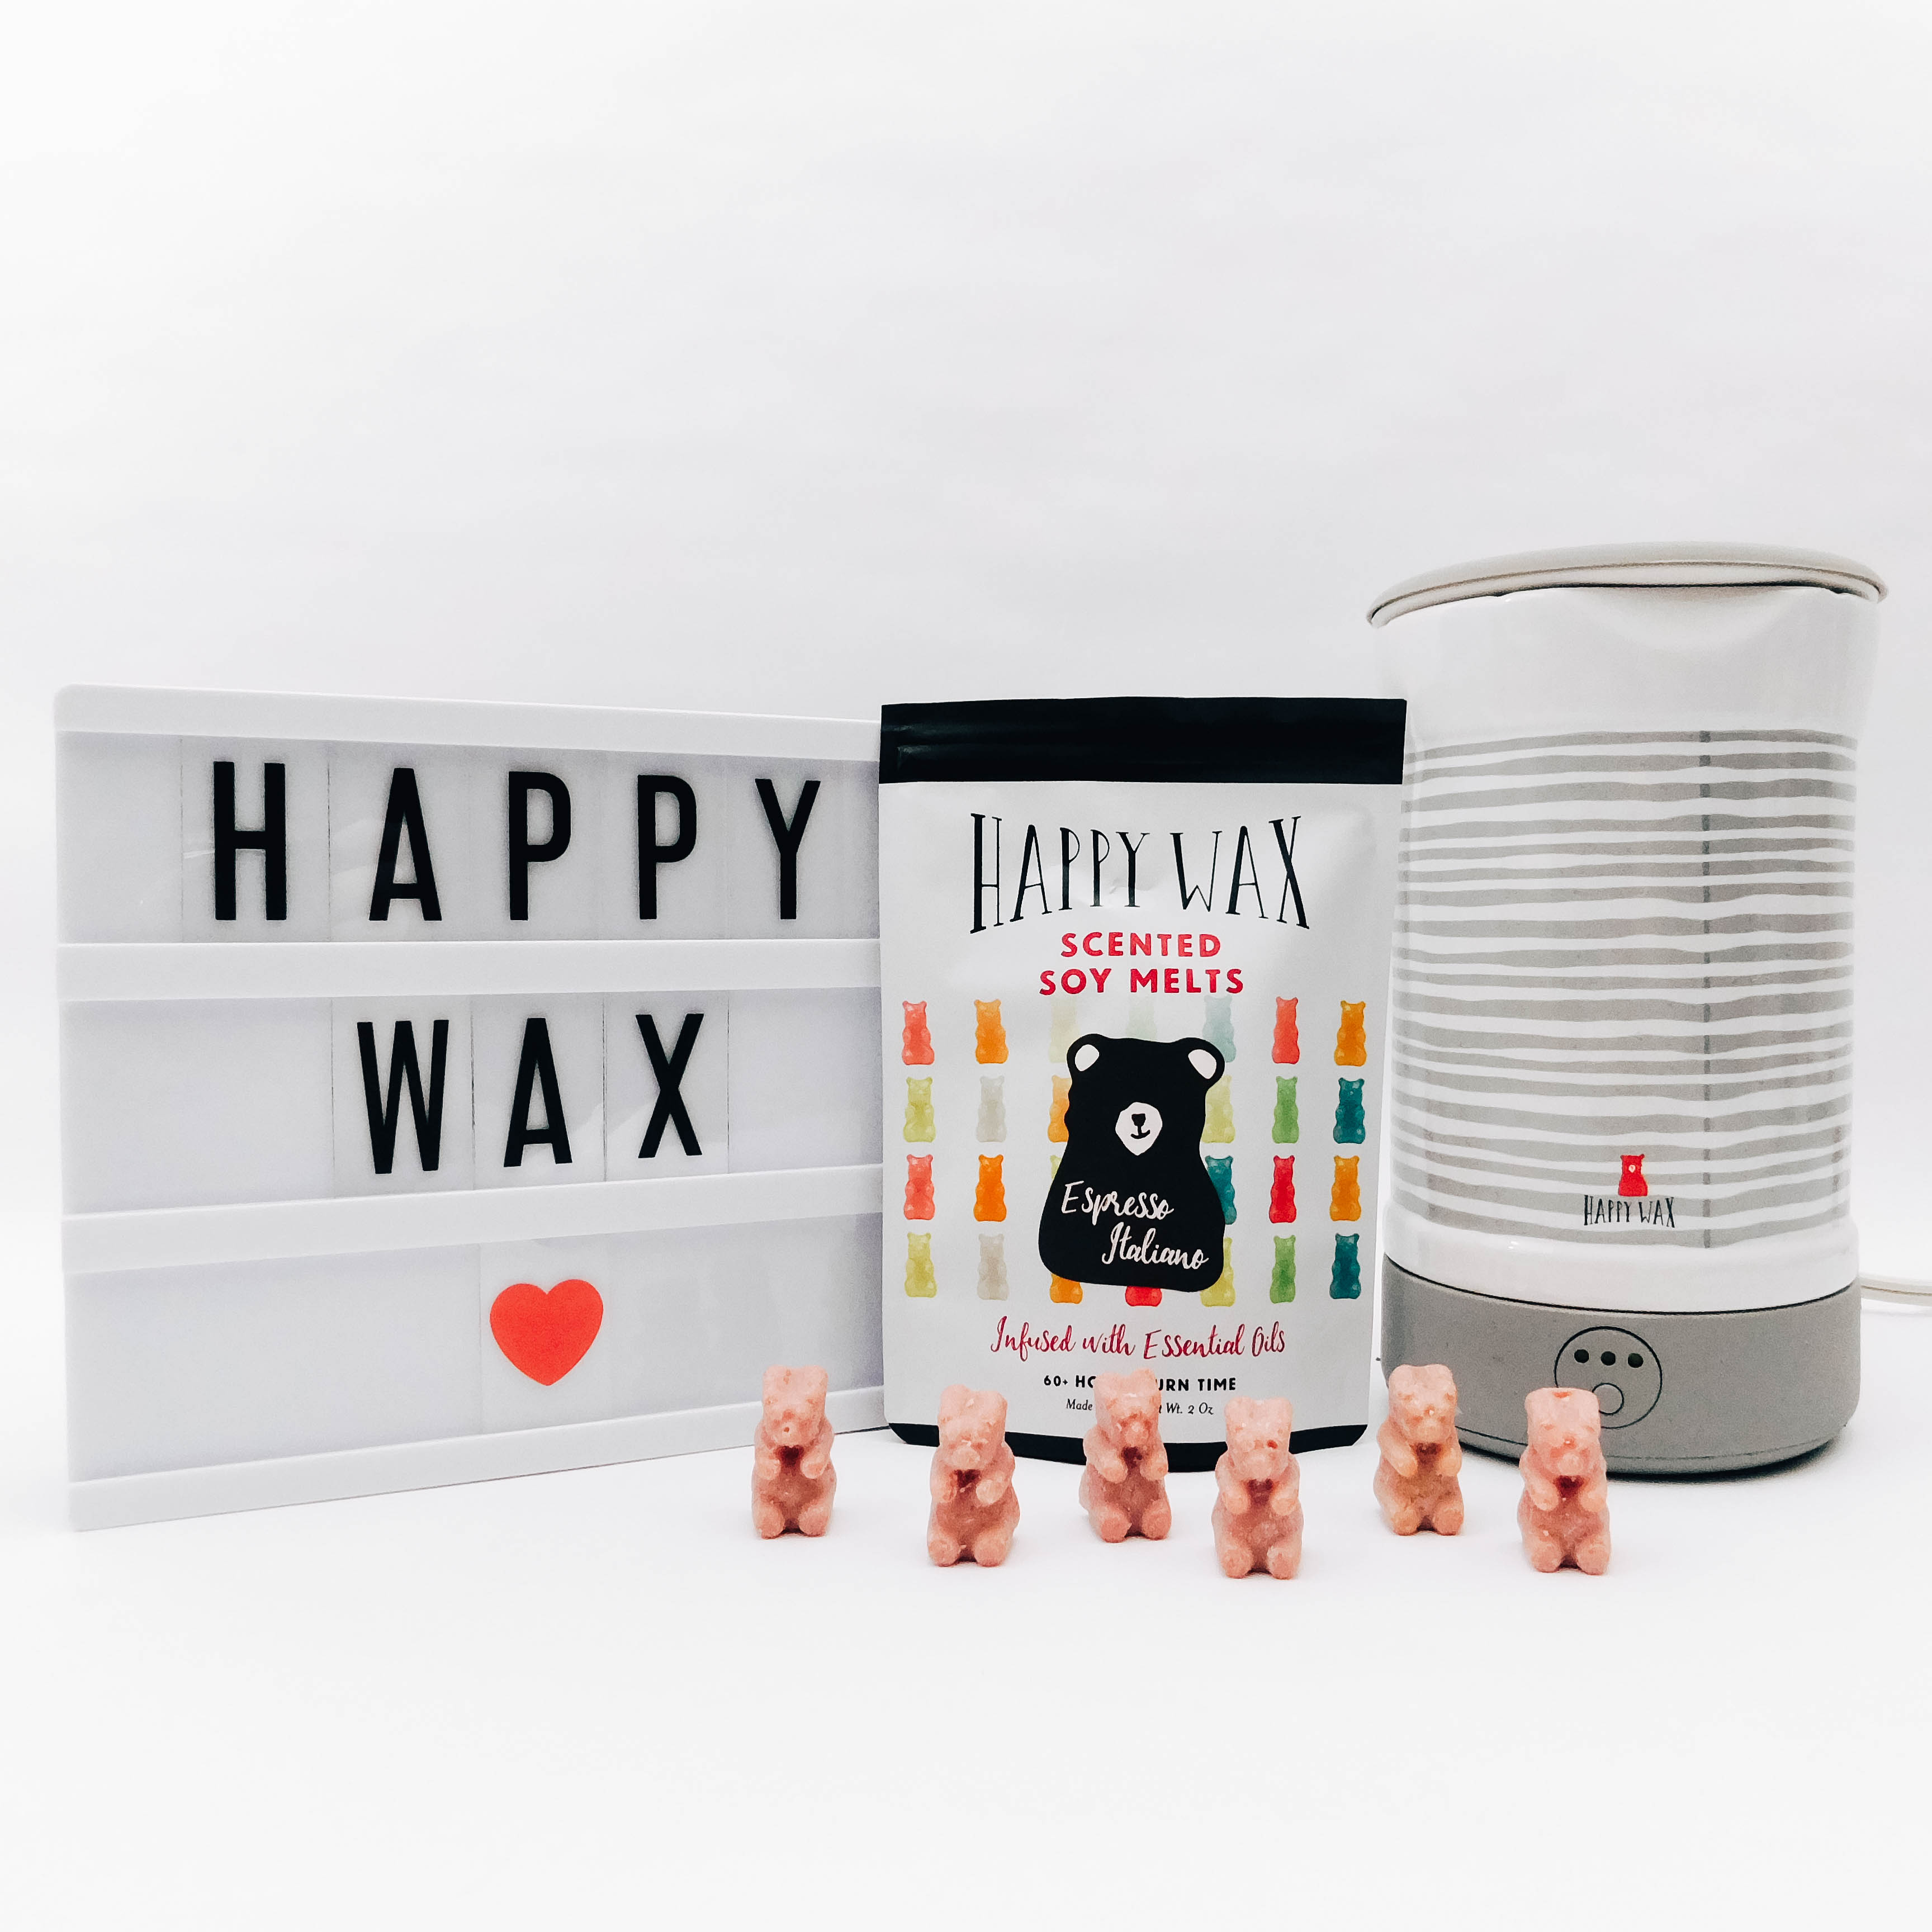 Happy Wax - Wax Warmer and Espresso Italiano Scented Soy Wax Melts stylishbrunette.com